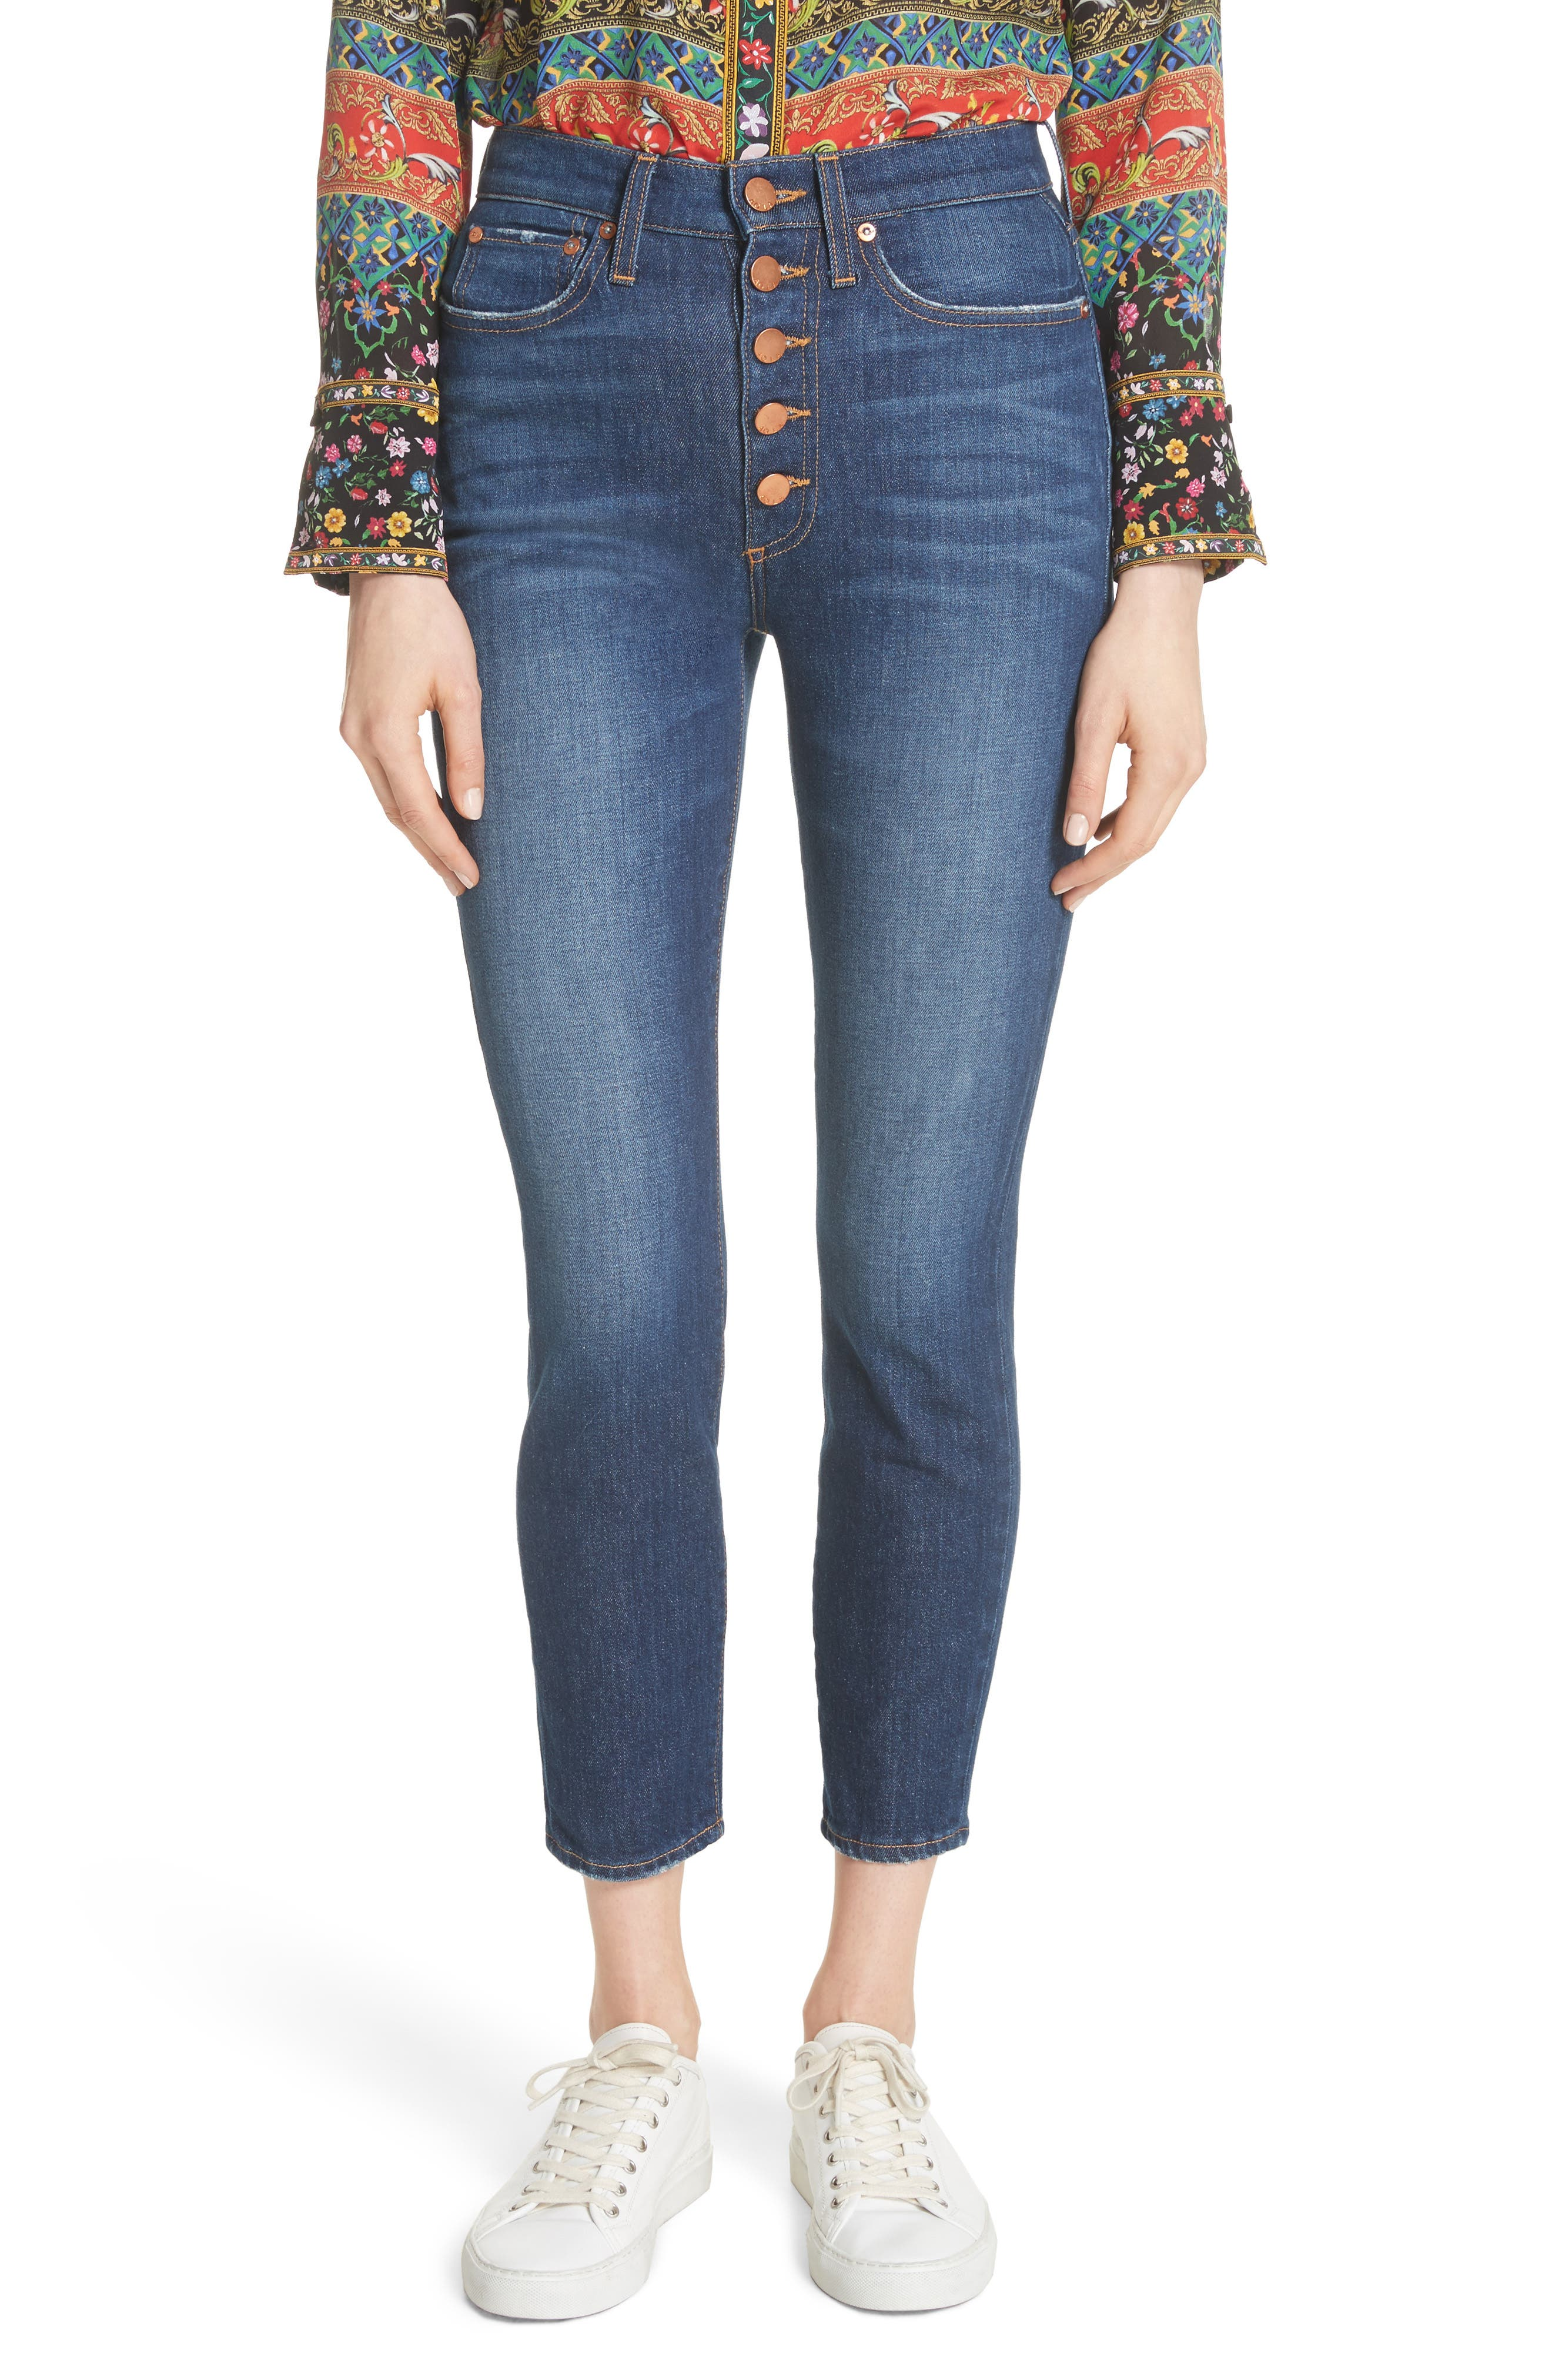 AO.LA Good High Waist Exposed Button Skinny Jeans,                         Main,                         color, 472